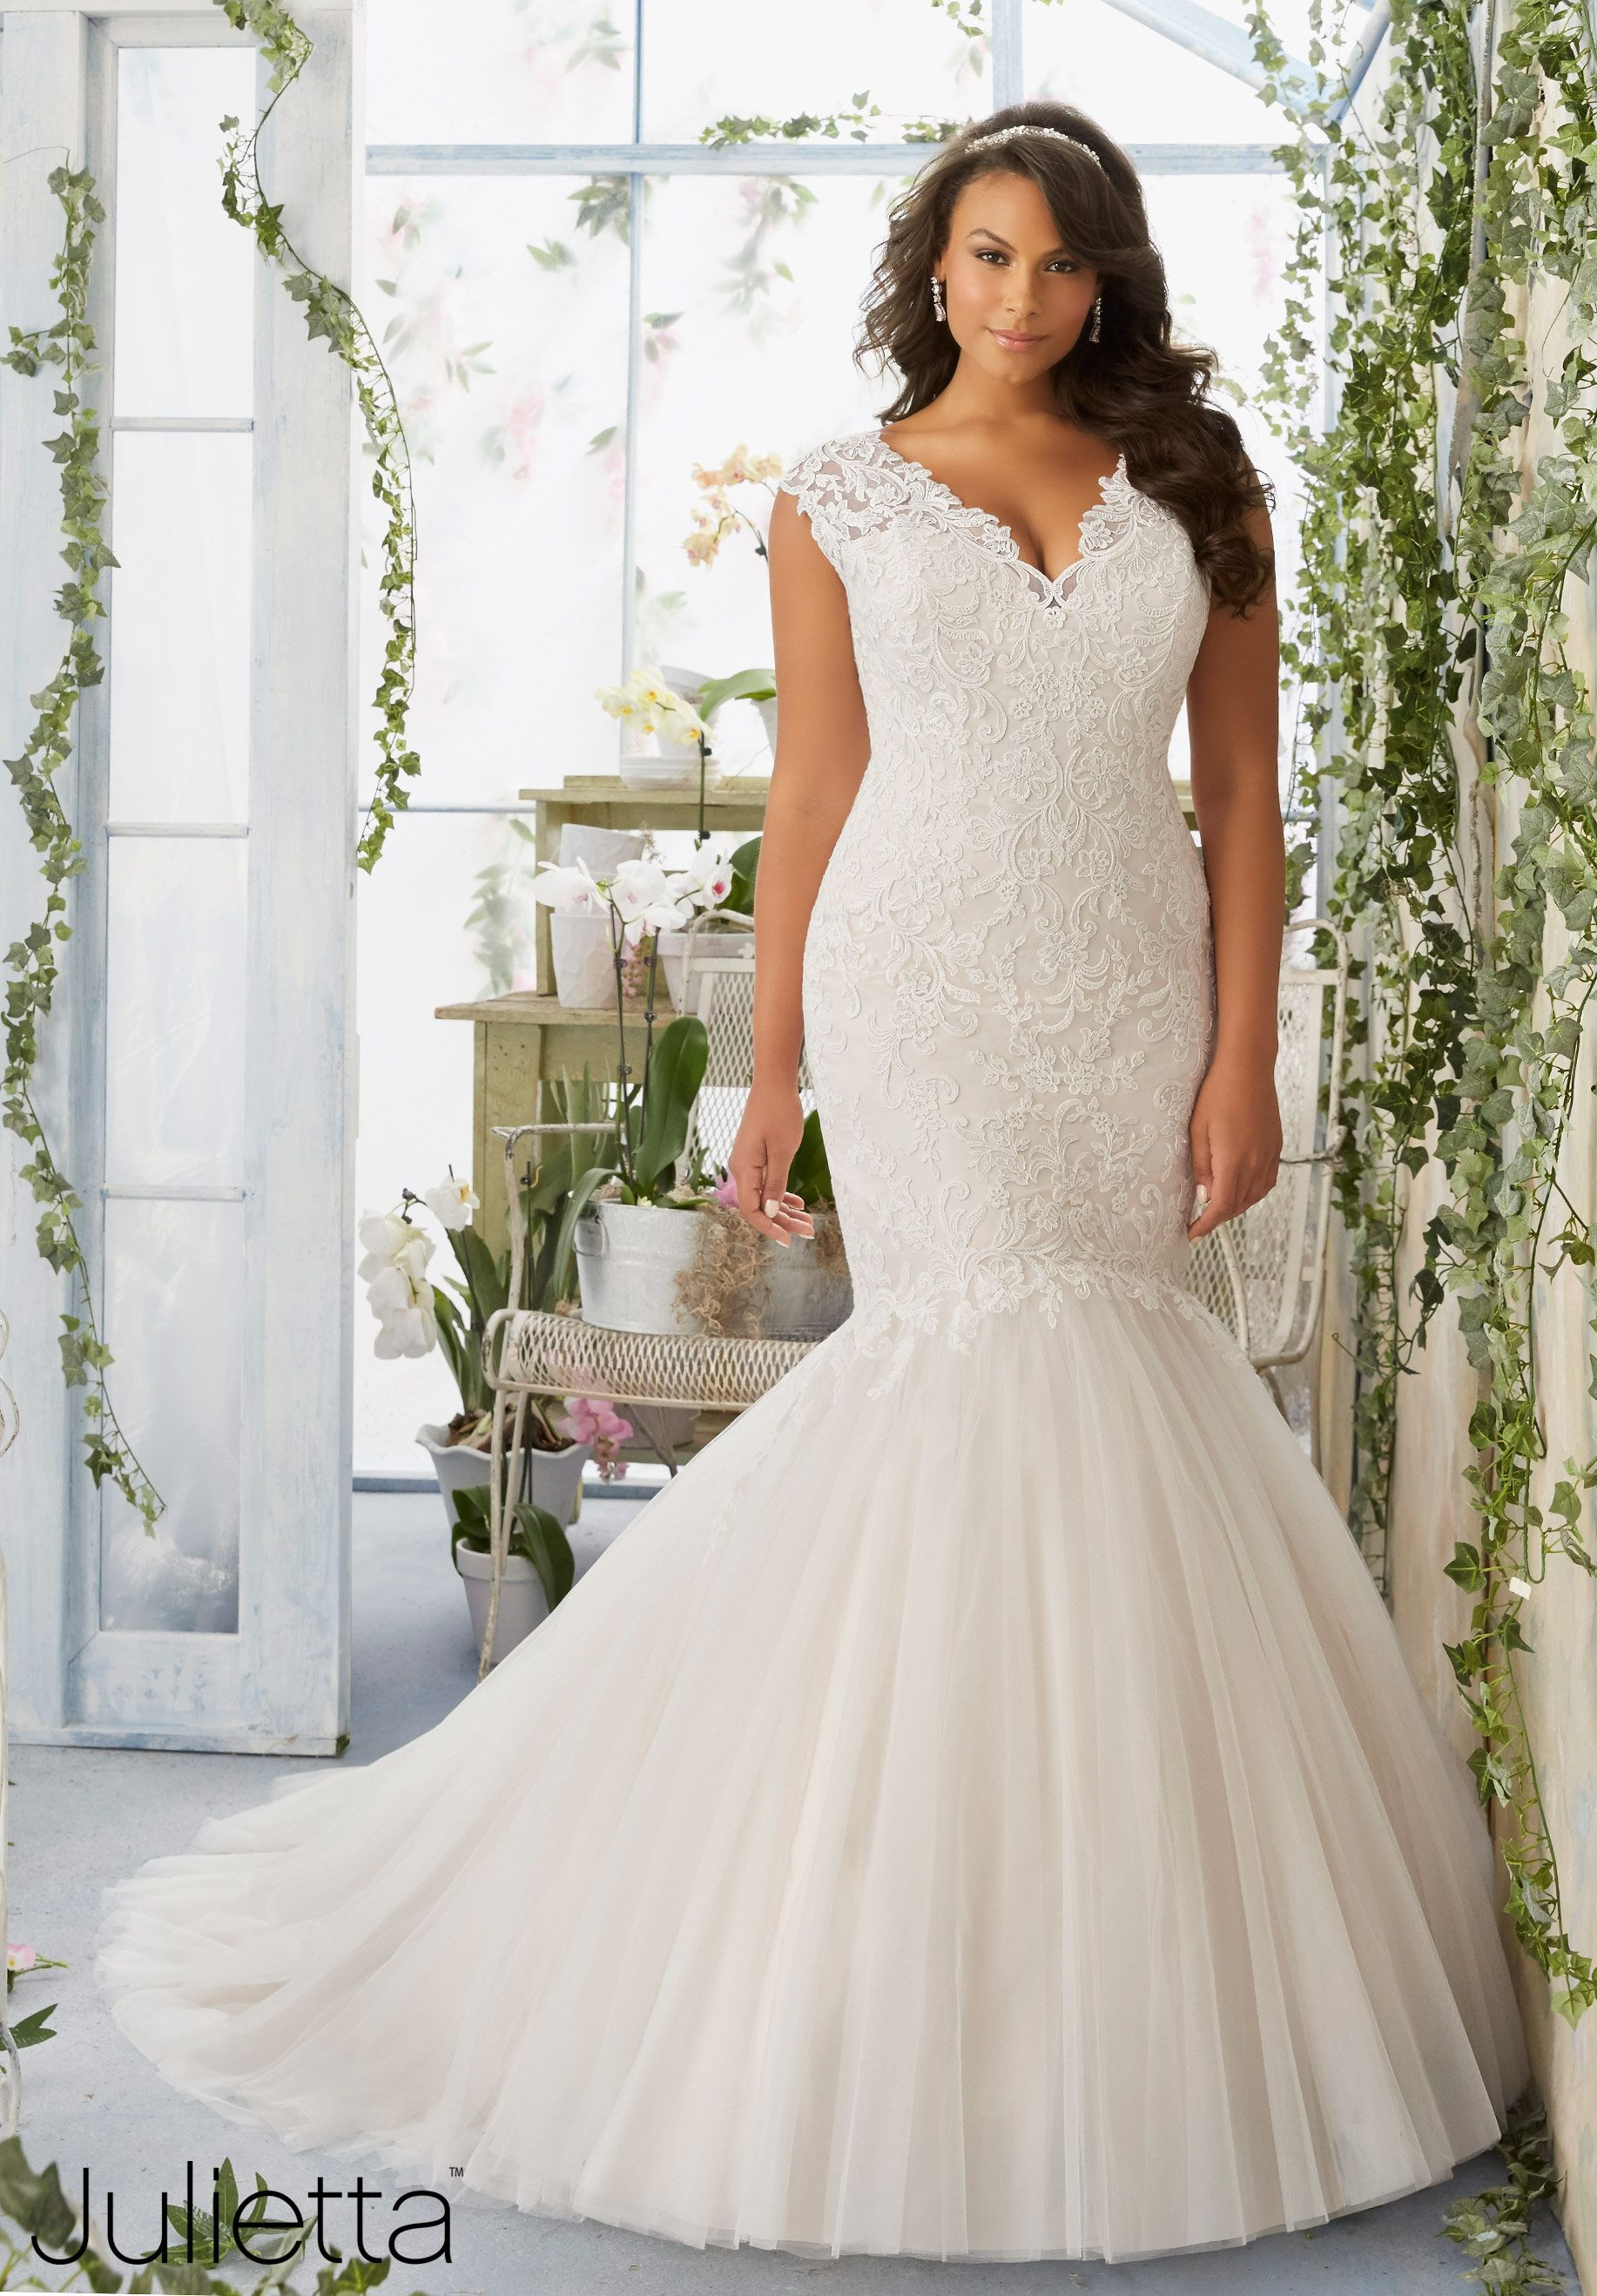 Plus size bridal gowns glenda wedding pinterest mori lee plus size bridal gowns ombrellifo Images